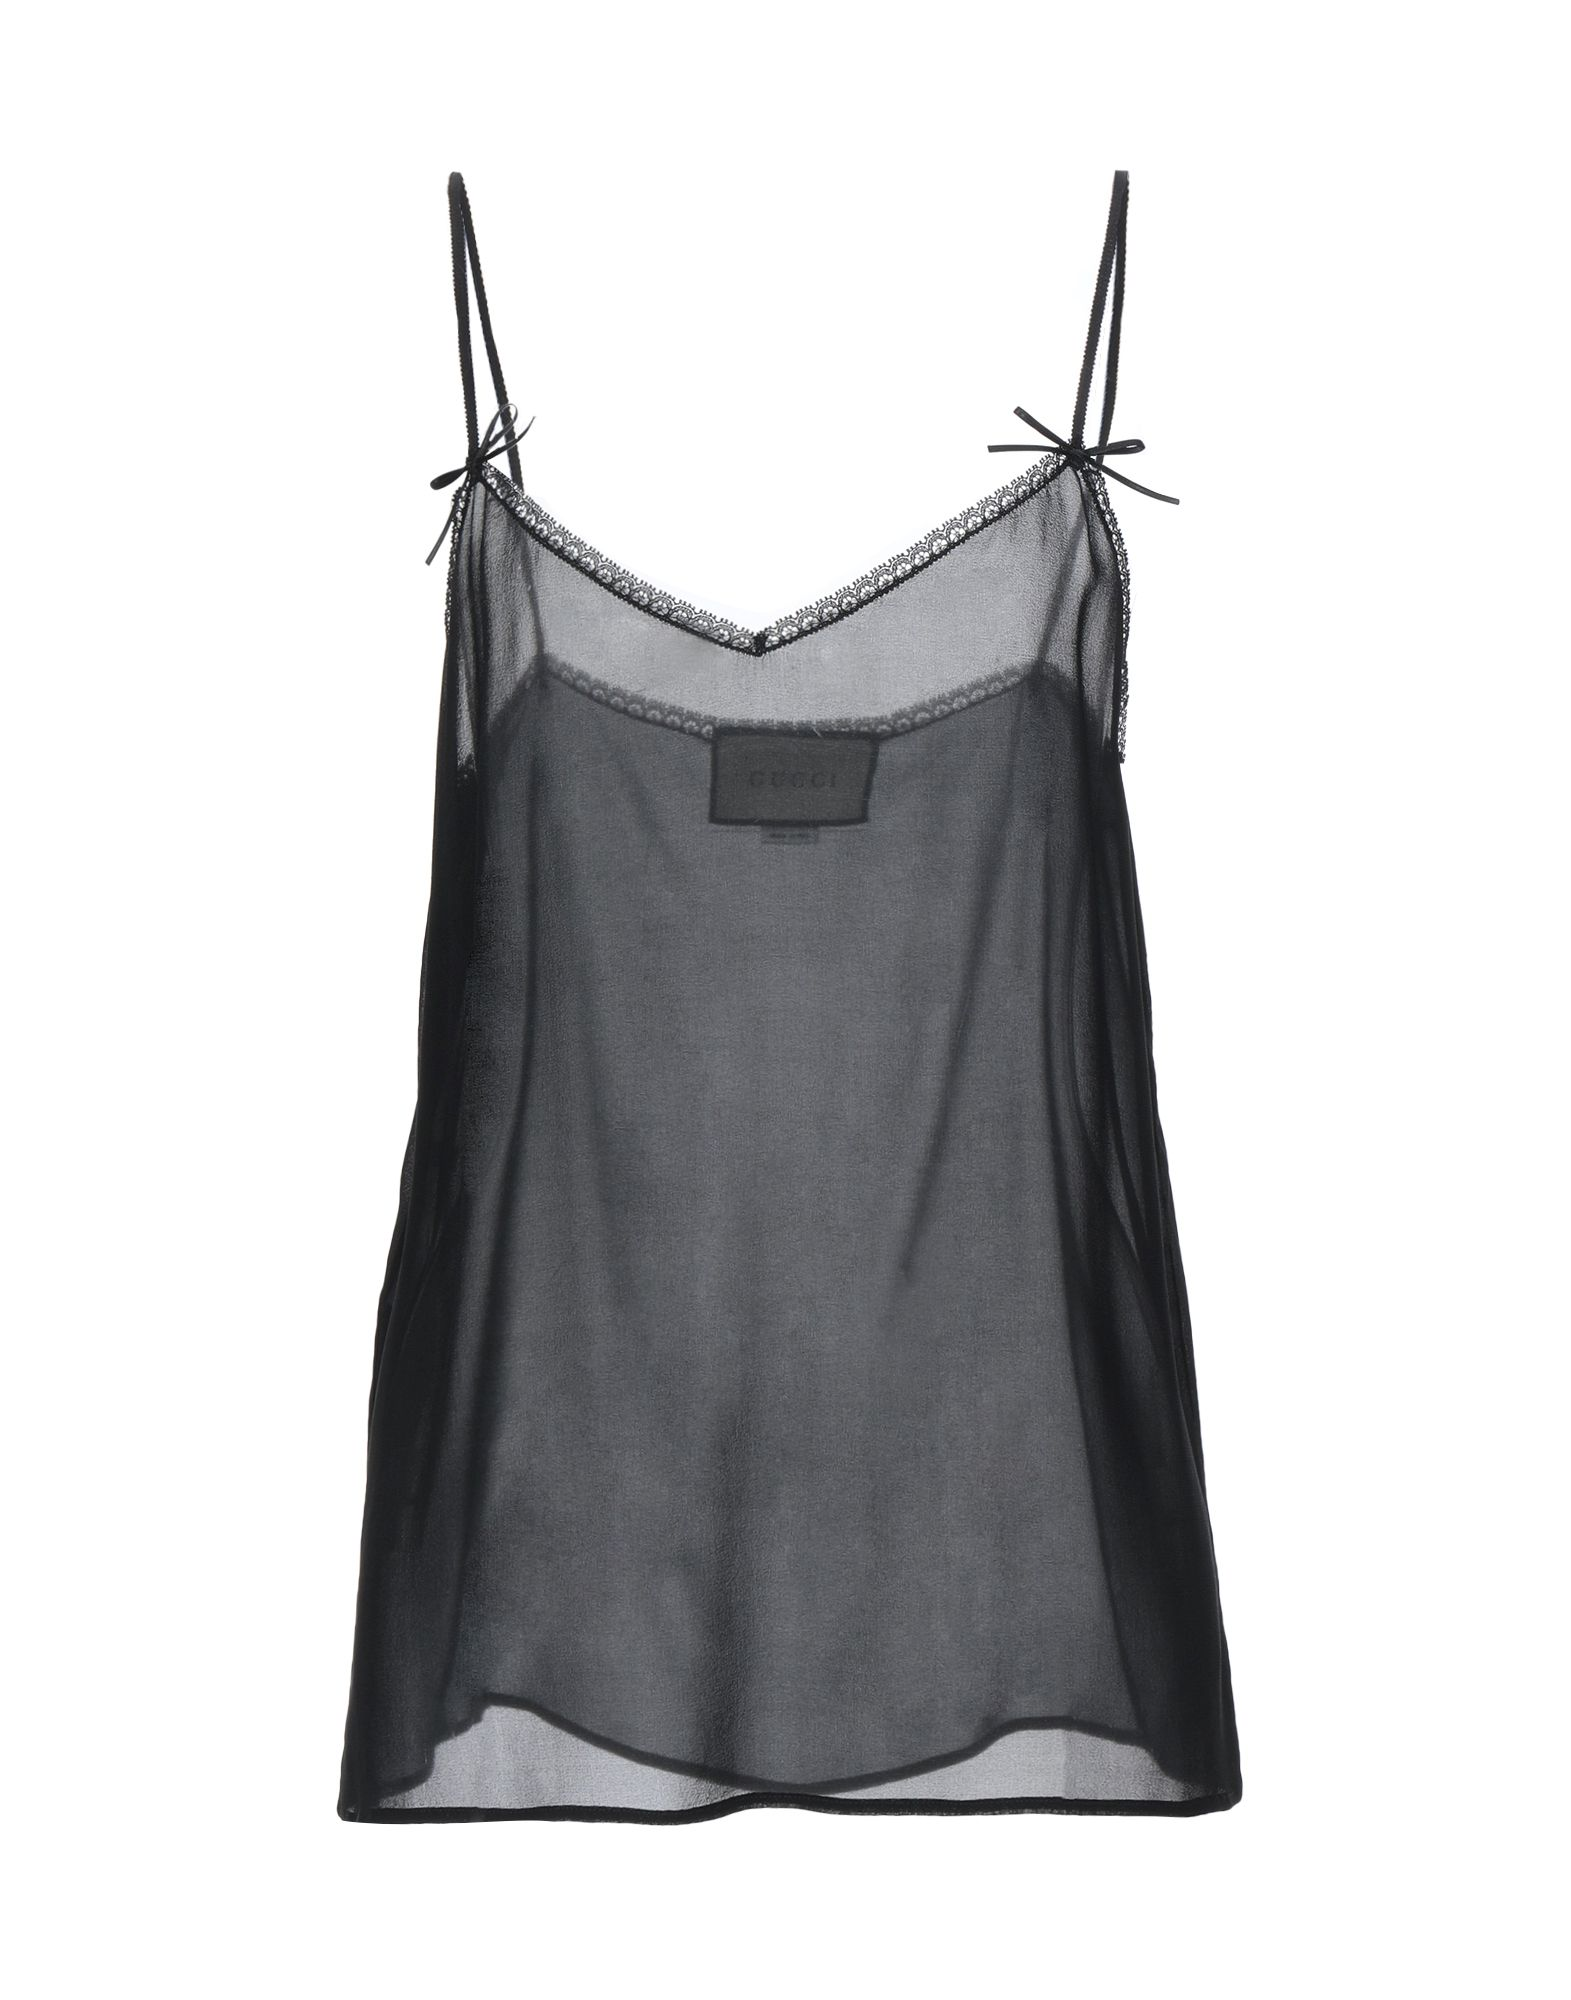 GUCCI Sleeveless undershirts. crepe, bow-detailed, deep neckline, basic solid color, sleeveless, no pockets, stretch. 90% Silk, 10% Elastane, Cotton, Viscose, Polyamide